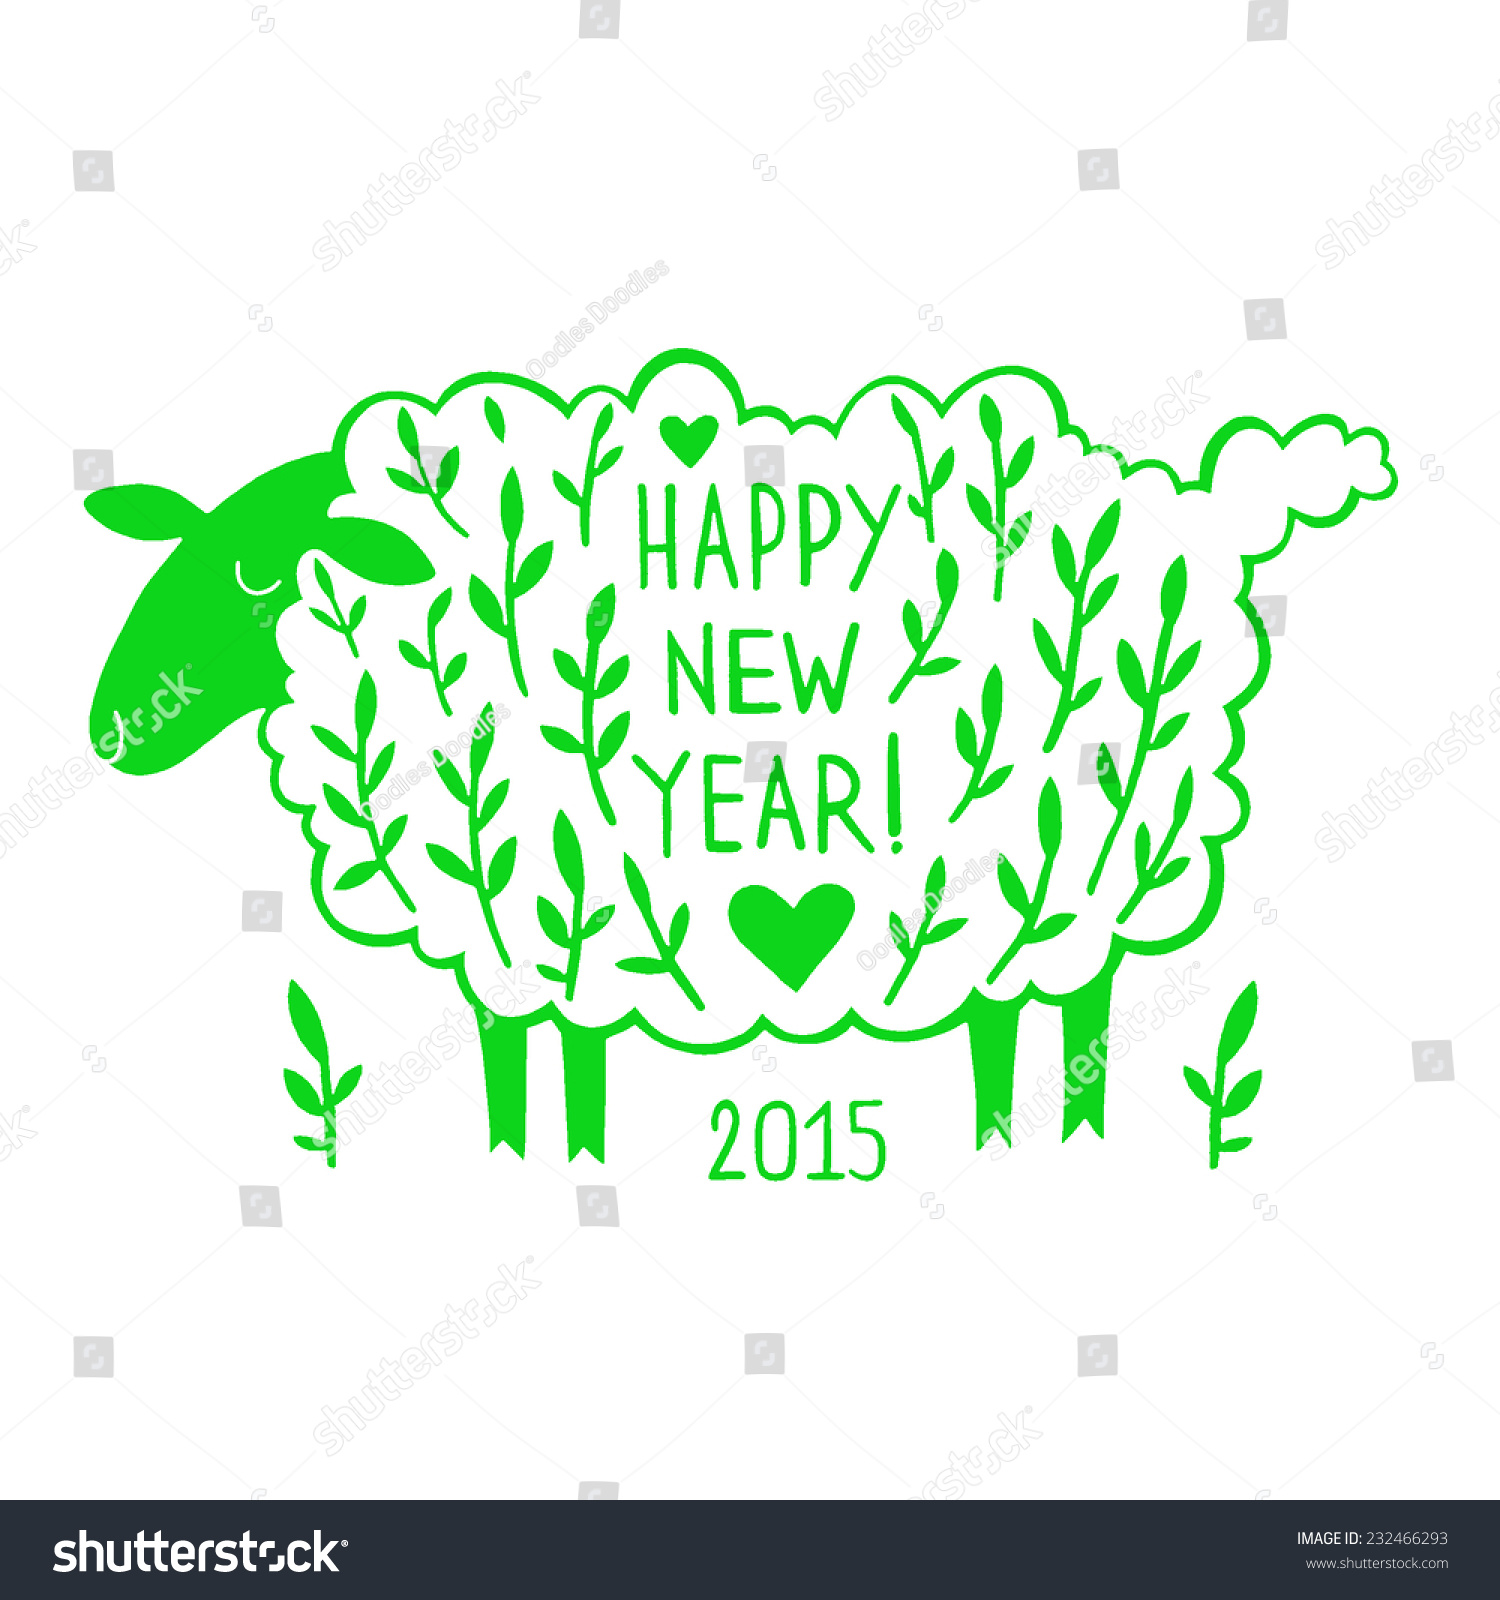 Paper cutting greeting card sheep silhouette stock illustration paper cutting greeting card with a sheep silhouette a symbol of 2015 chinese new year kristyandbryce Image collections